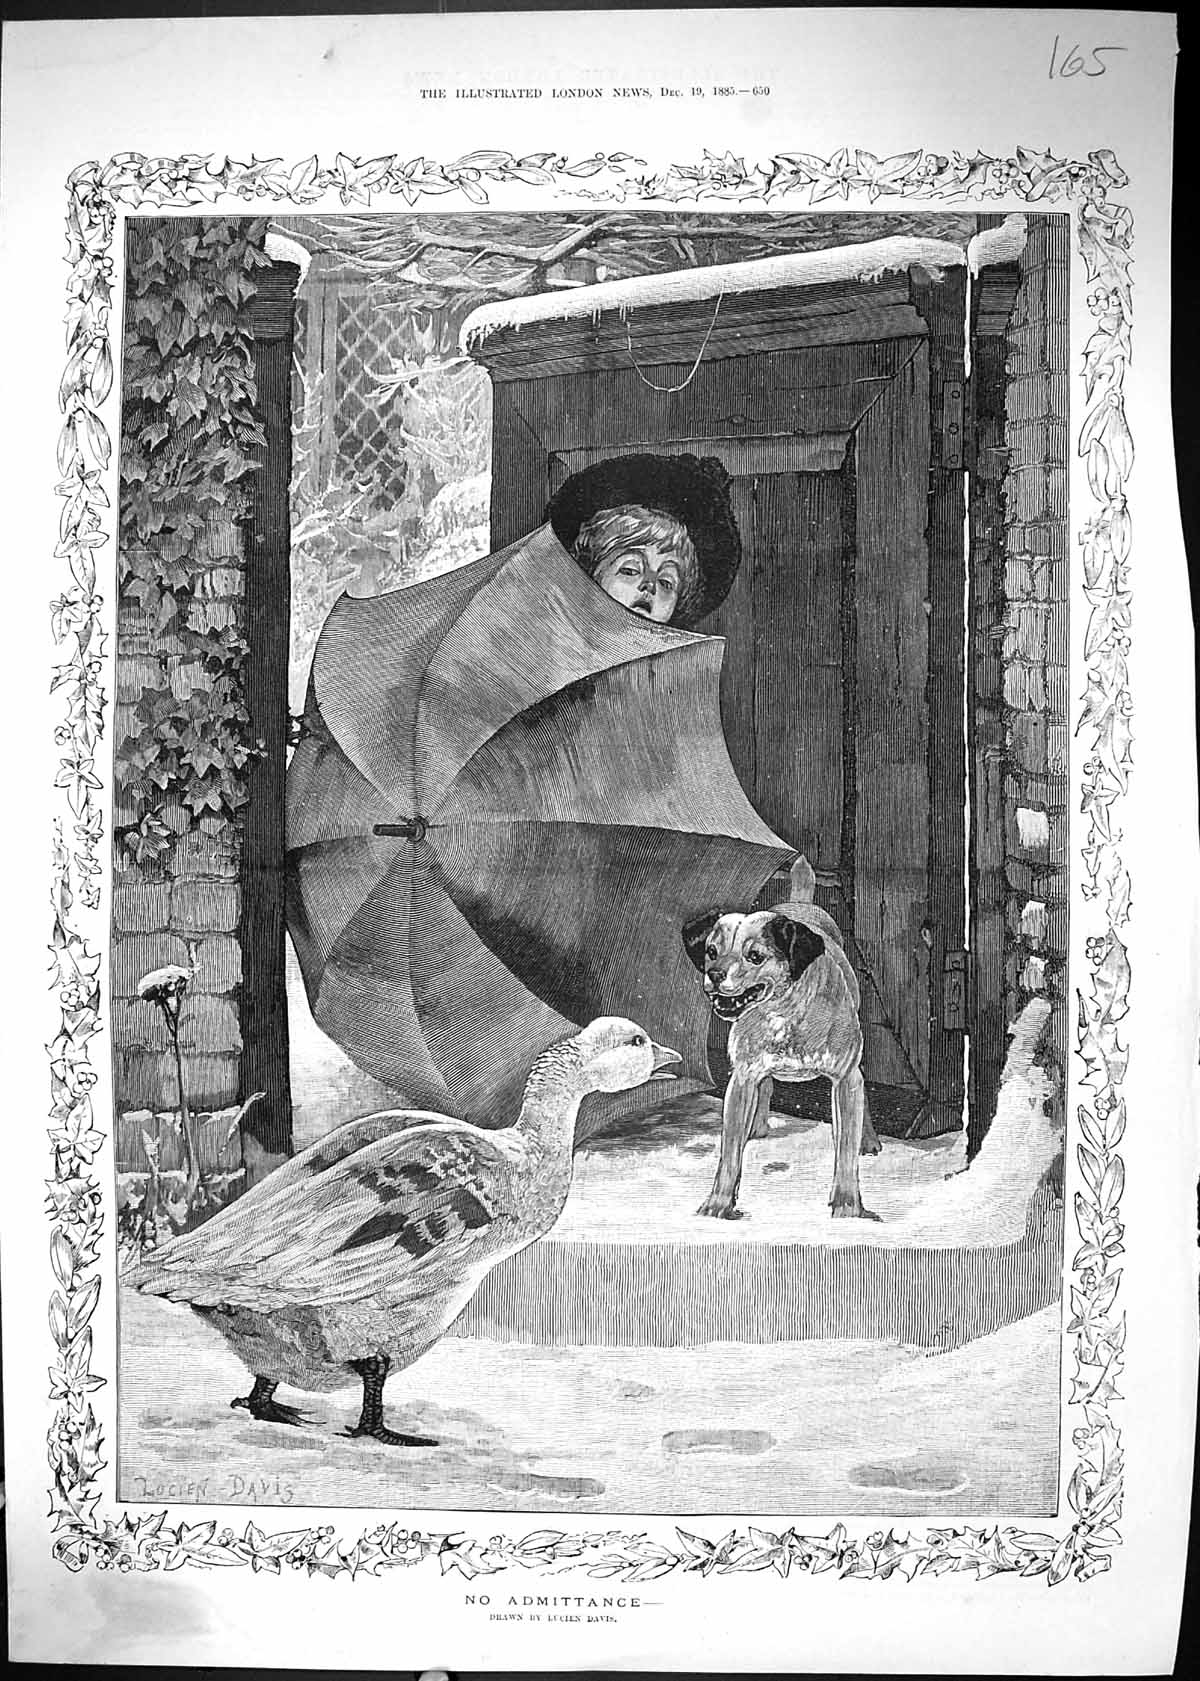 [Print No Admittance Young Boy Umbrella House Gate Goose Dog 1885 165J510 Old Original]